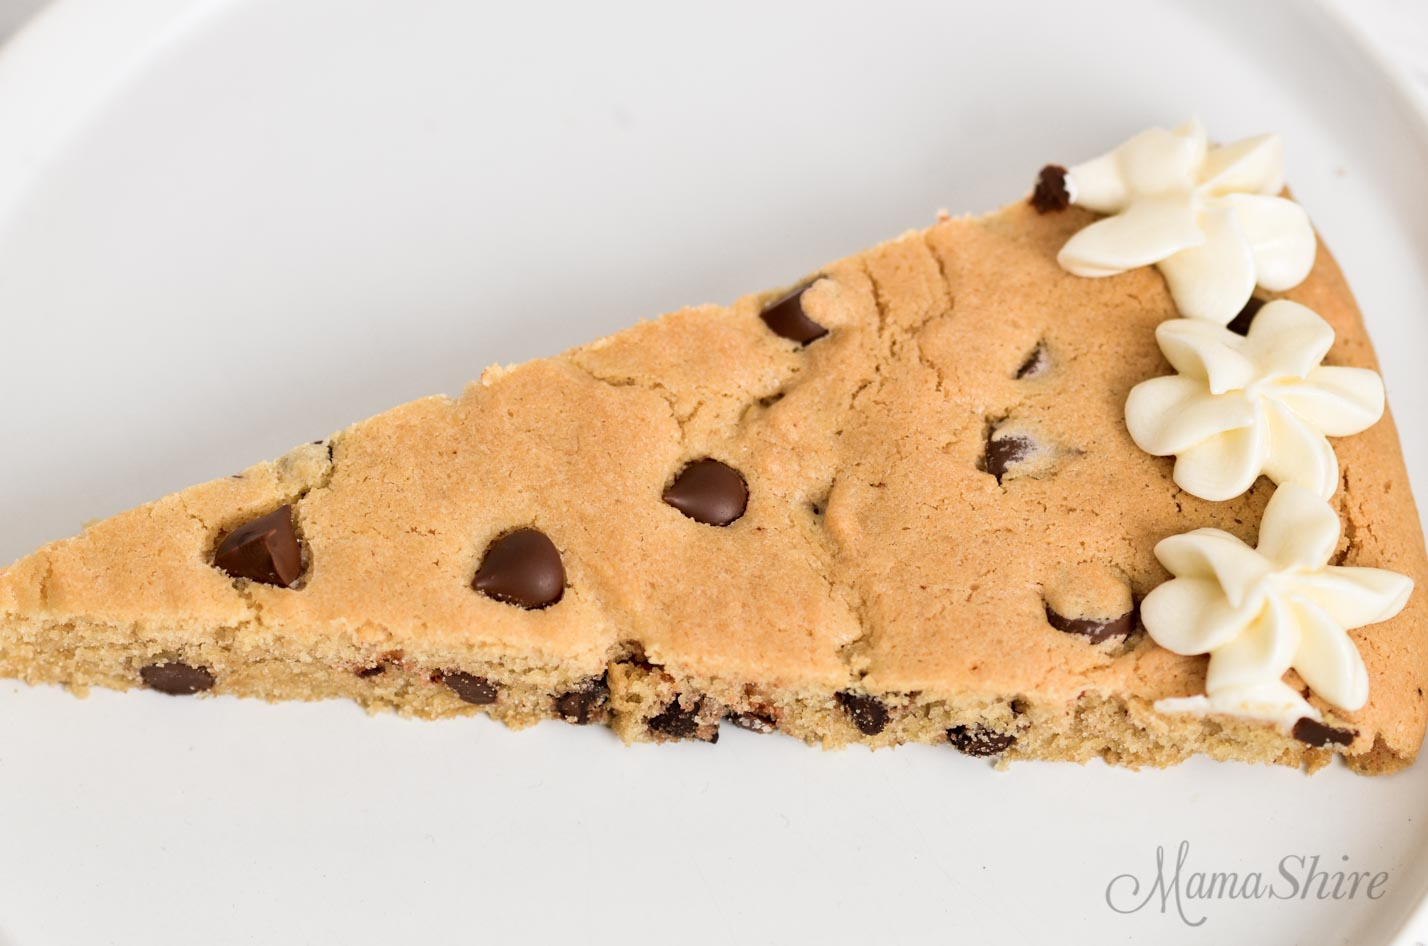 A slice of gluten-free pizza cookie.